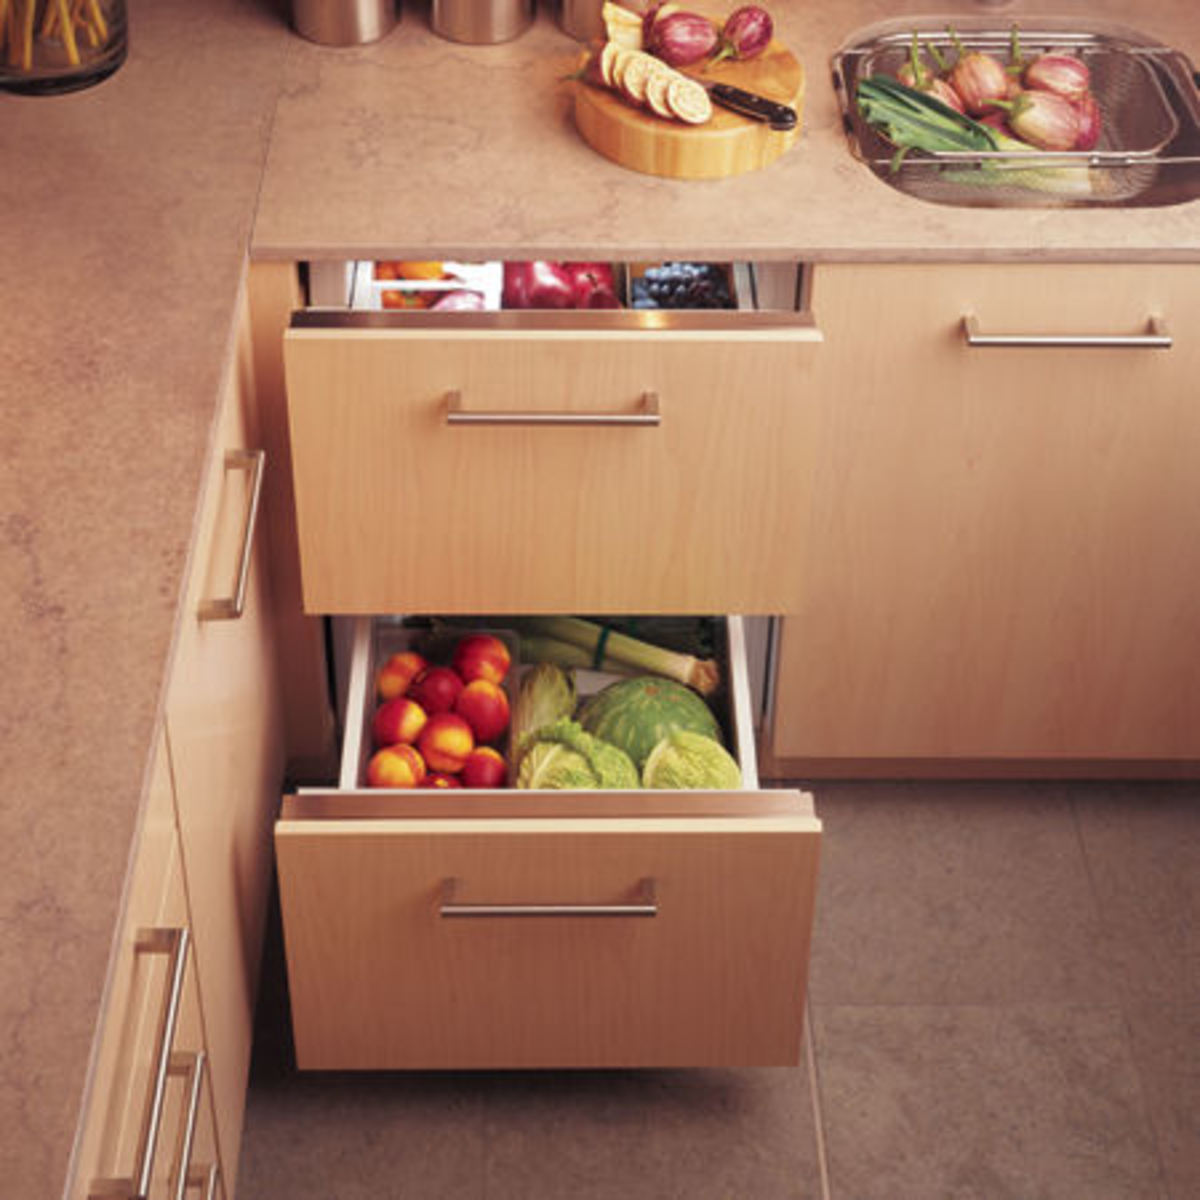 Under Counter refrigerator drawers are very functional!